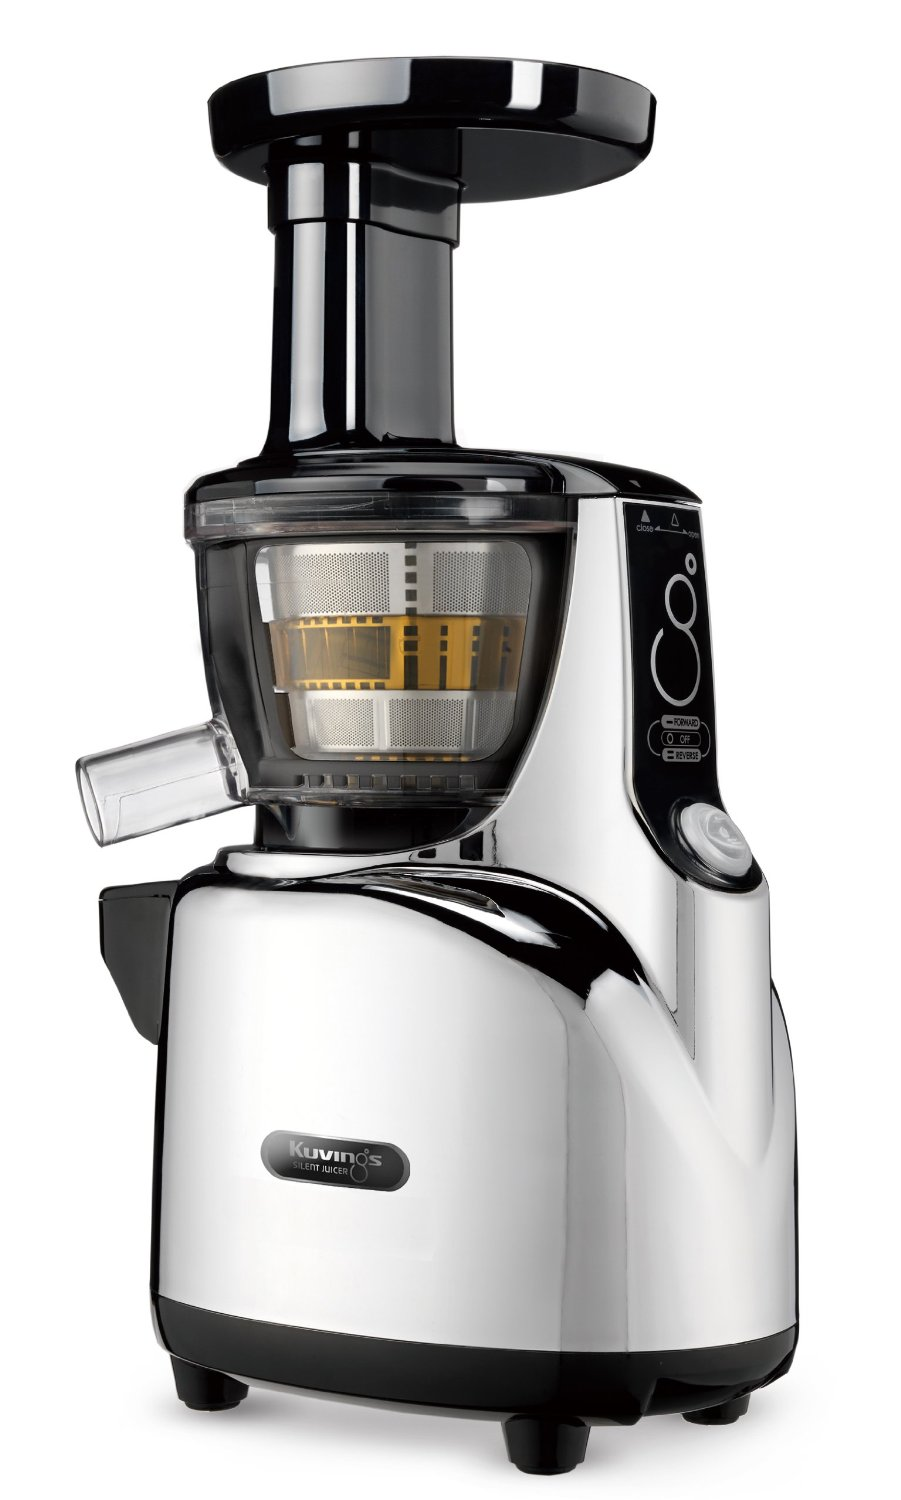 Kuvings Whole Slow Juicer Review : 5 Best Kuvings Juicer Reviews UPDATED: 2018 The Home Savant